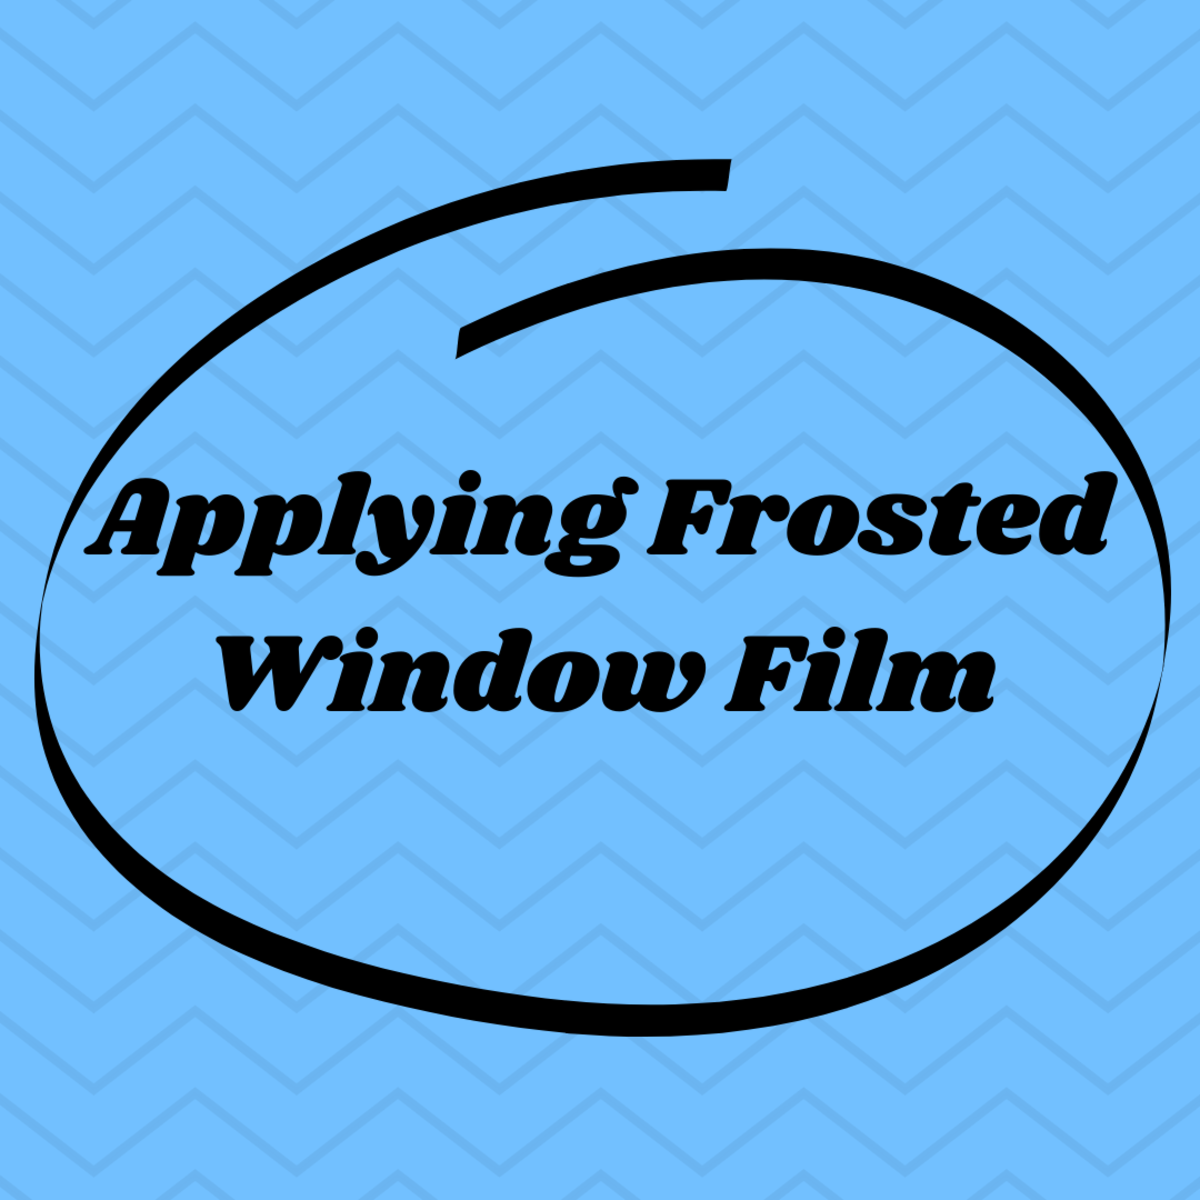 Learn how to apply frosted window film in your home, as well as why you might want to